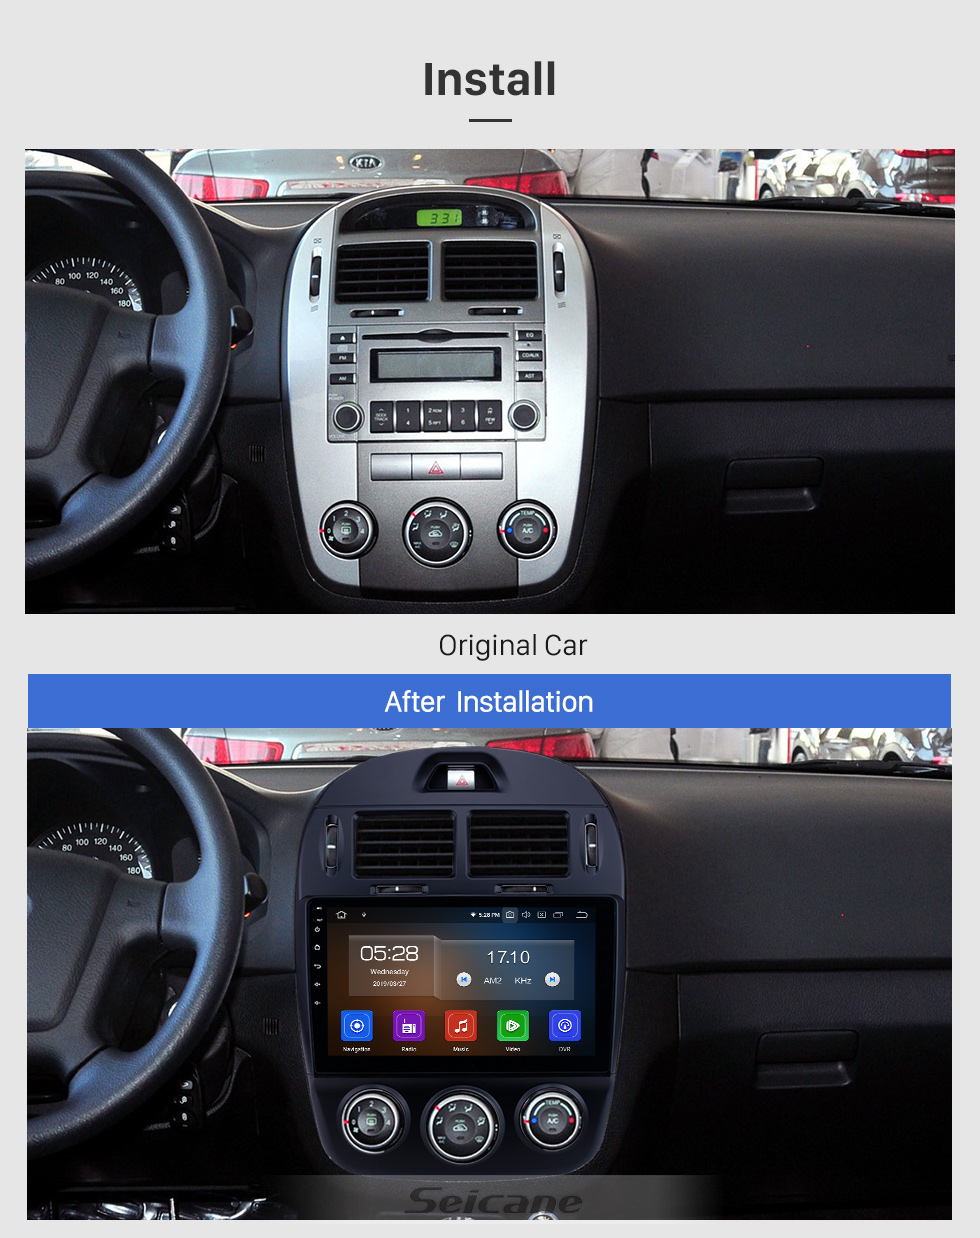 Seicane 10.1 inch Android 9.0 GPS Navigation Radio for 2017-2019 Kia Cerato Manual A/C Bluetooth Wifi HD Touchscreen Music Carplay support Backup camera 1080P